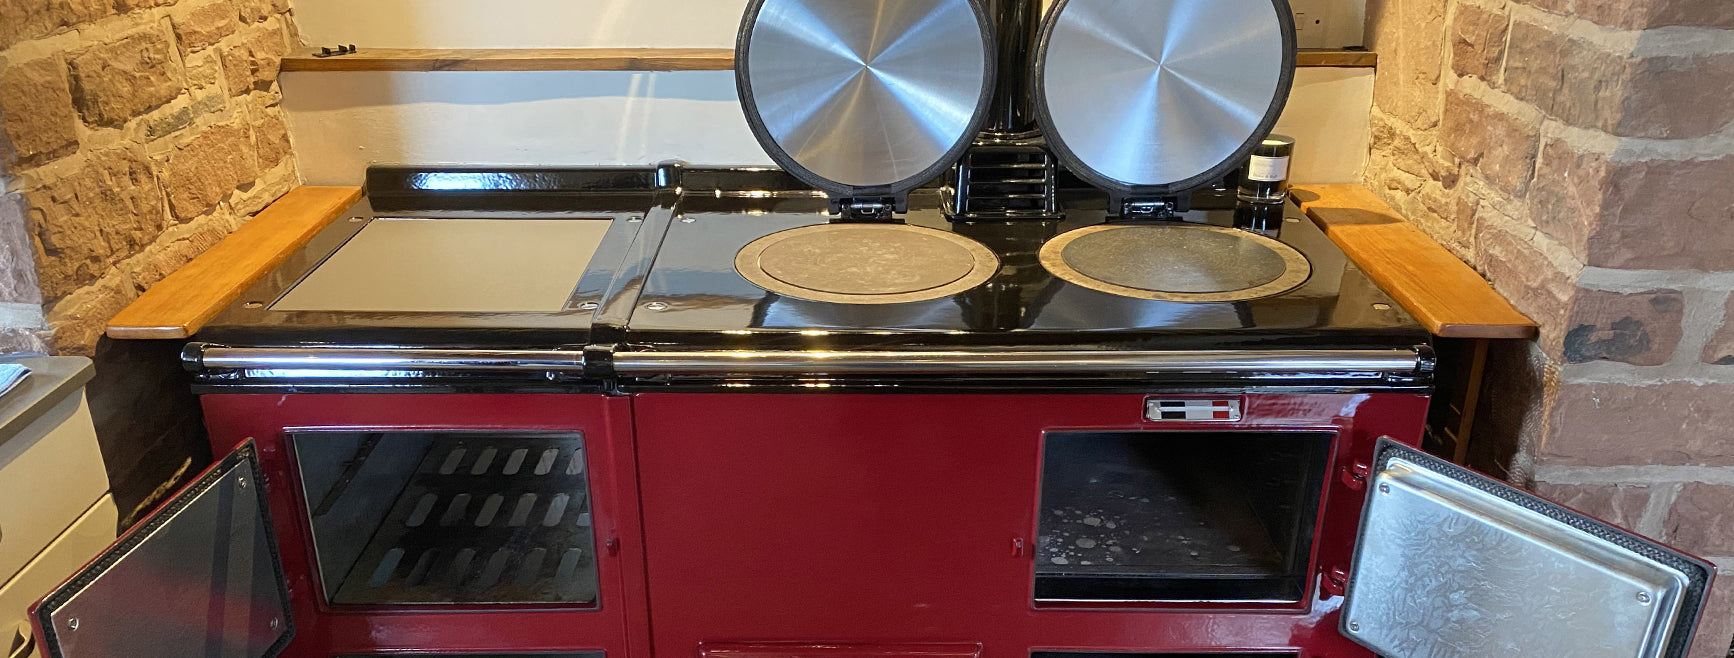 Re-enamelling an Aga range cooker | From cream to claret in Cumbria